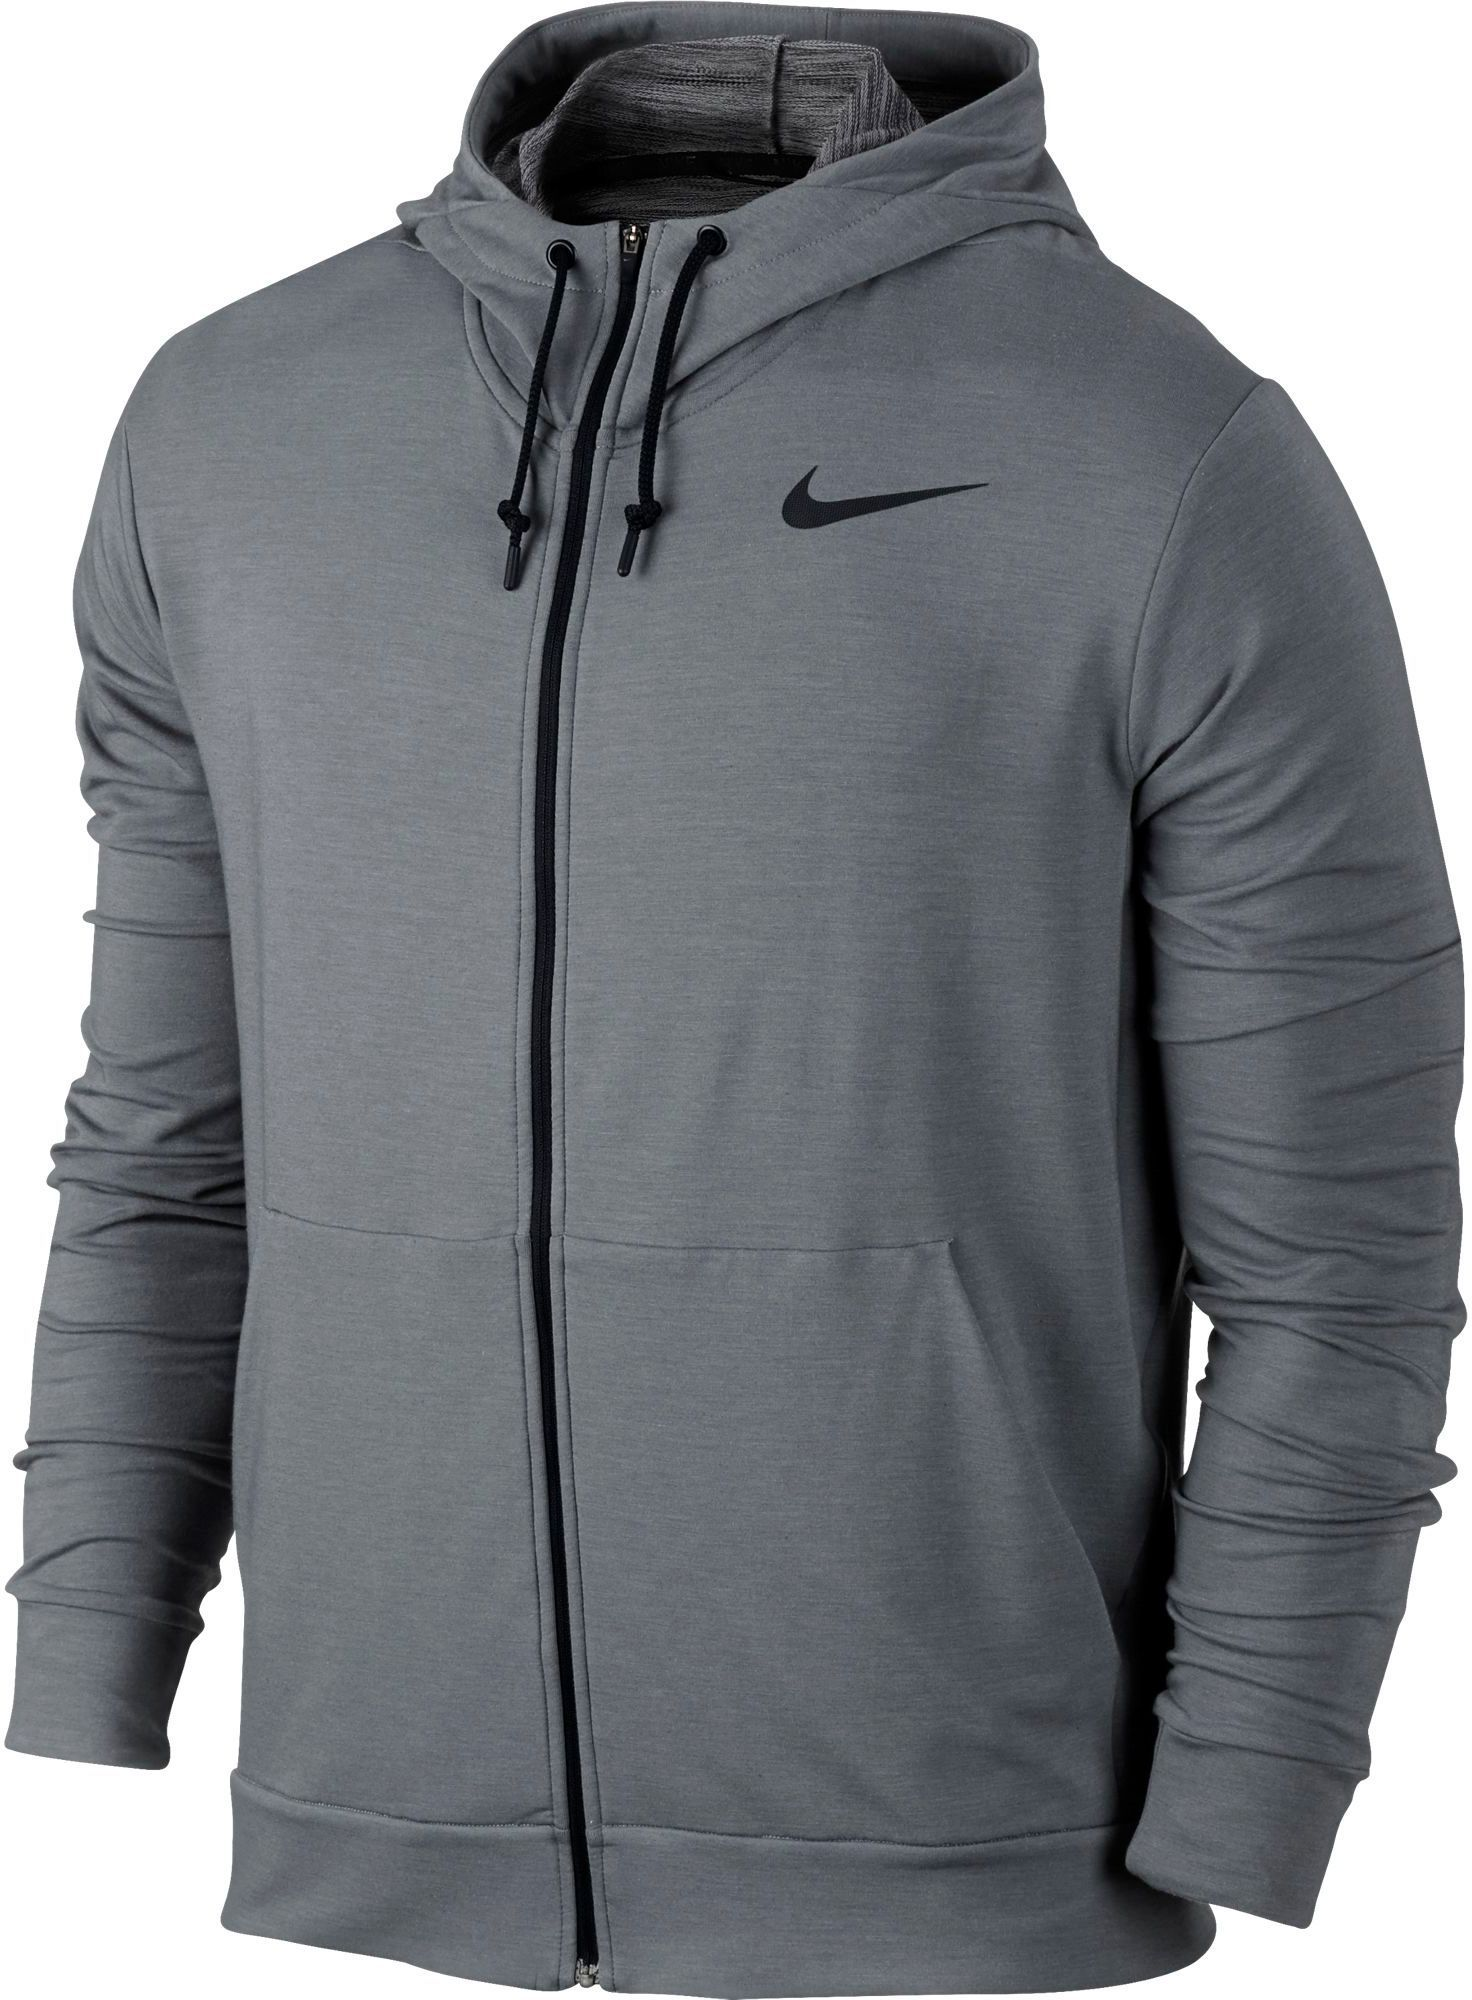 d70fa220ae4d Nike Men s Dri-FIT Fleece Full Zip Hoodie